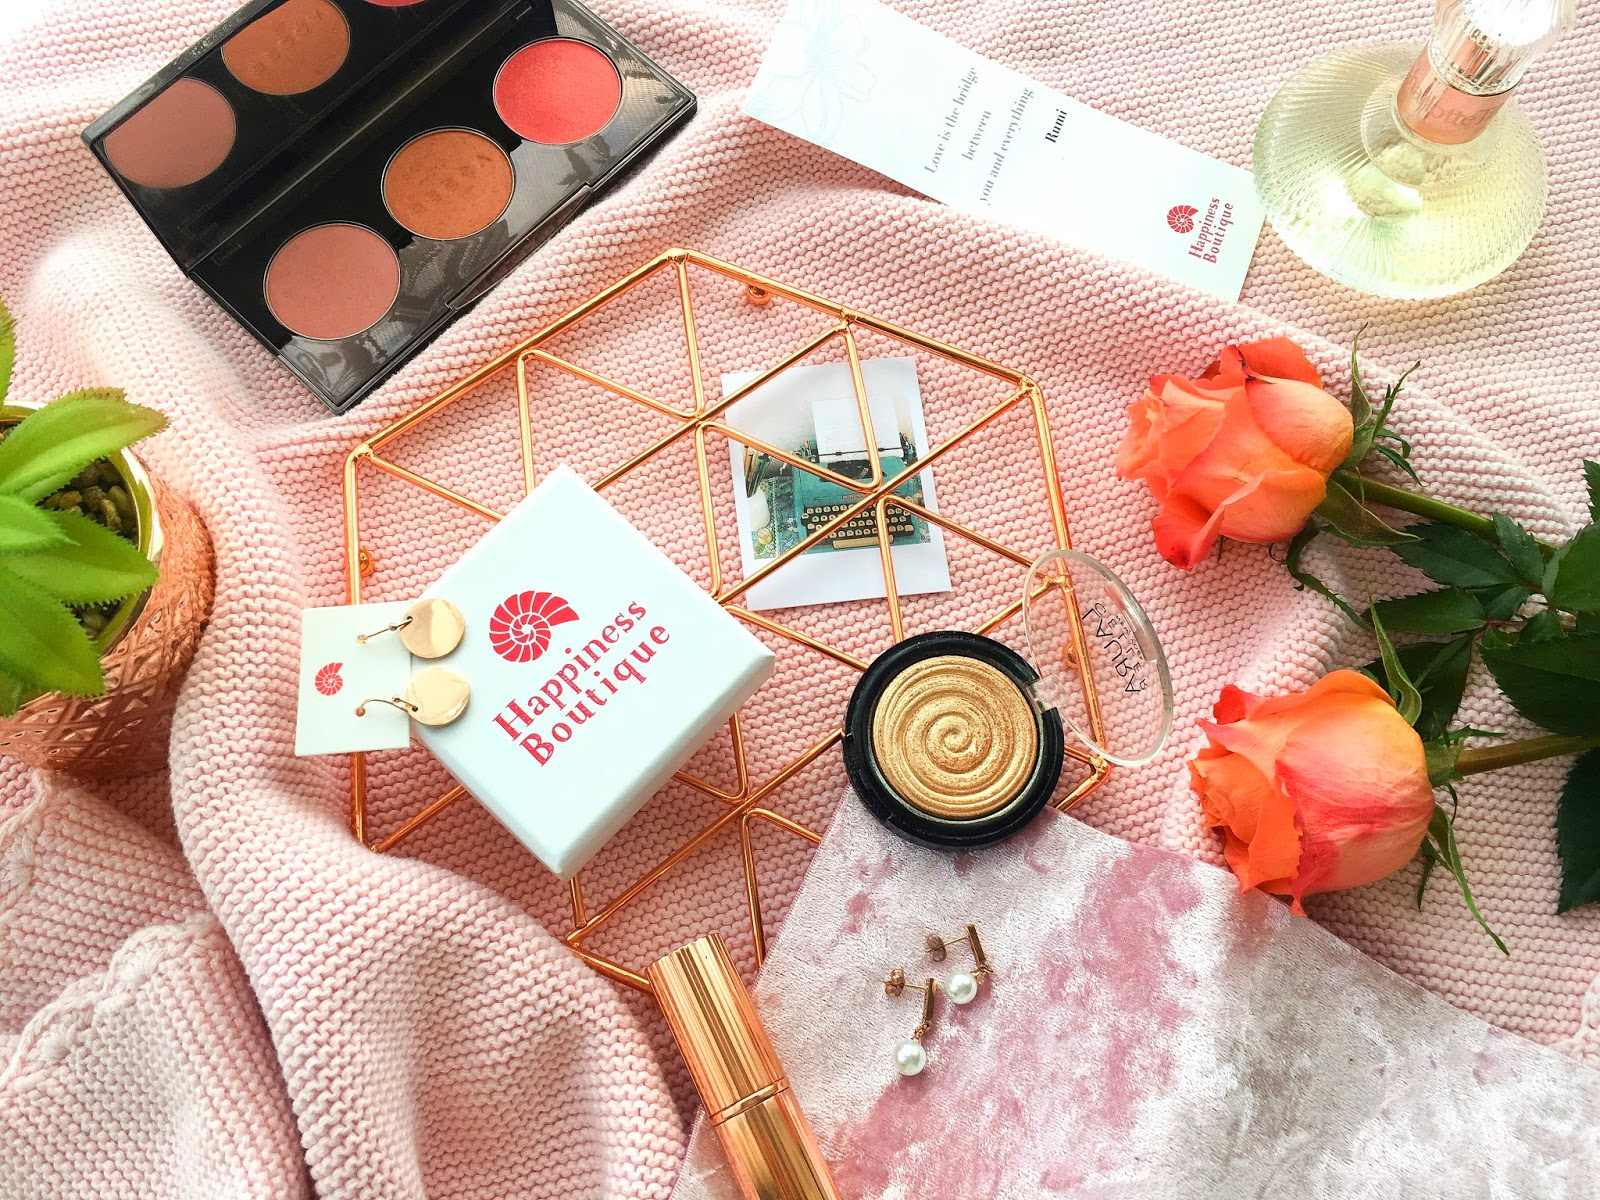 happiness boutique review, happiness boutique rose gold earrings review, happiness boutique review